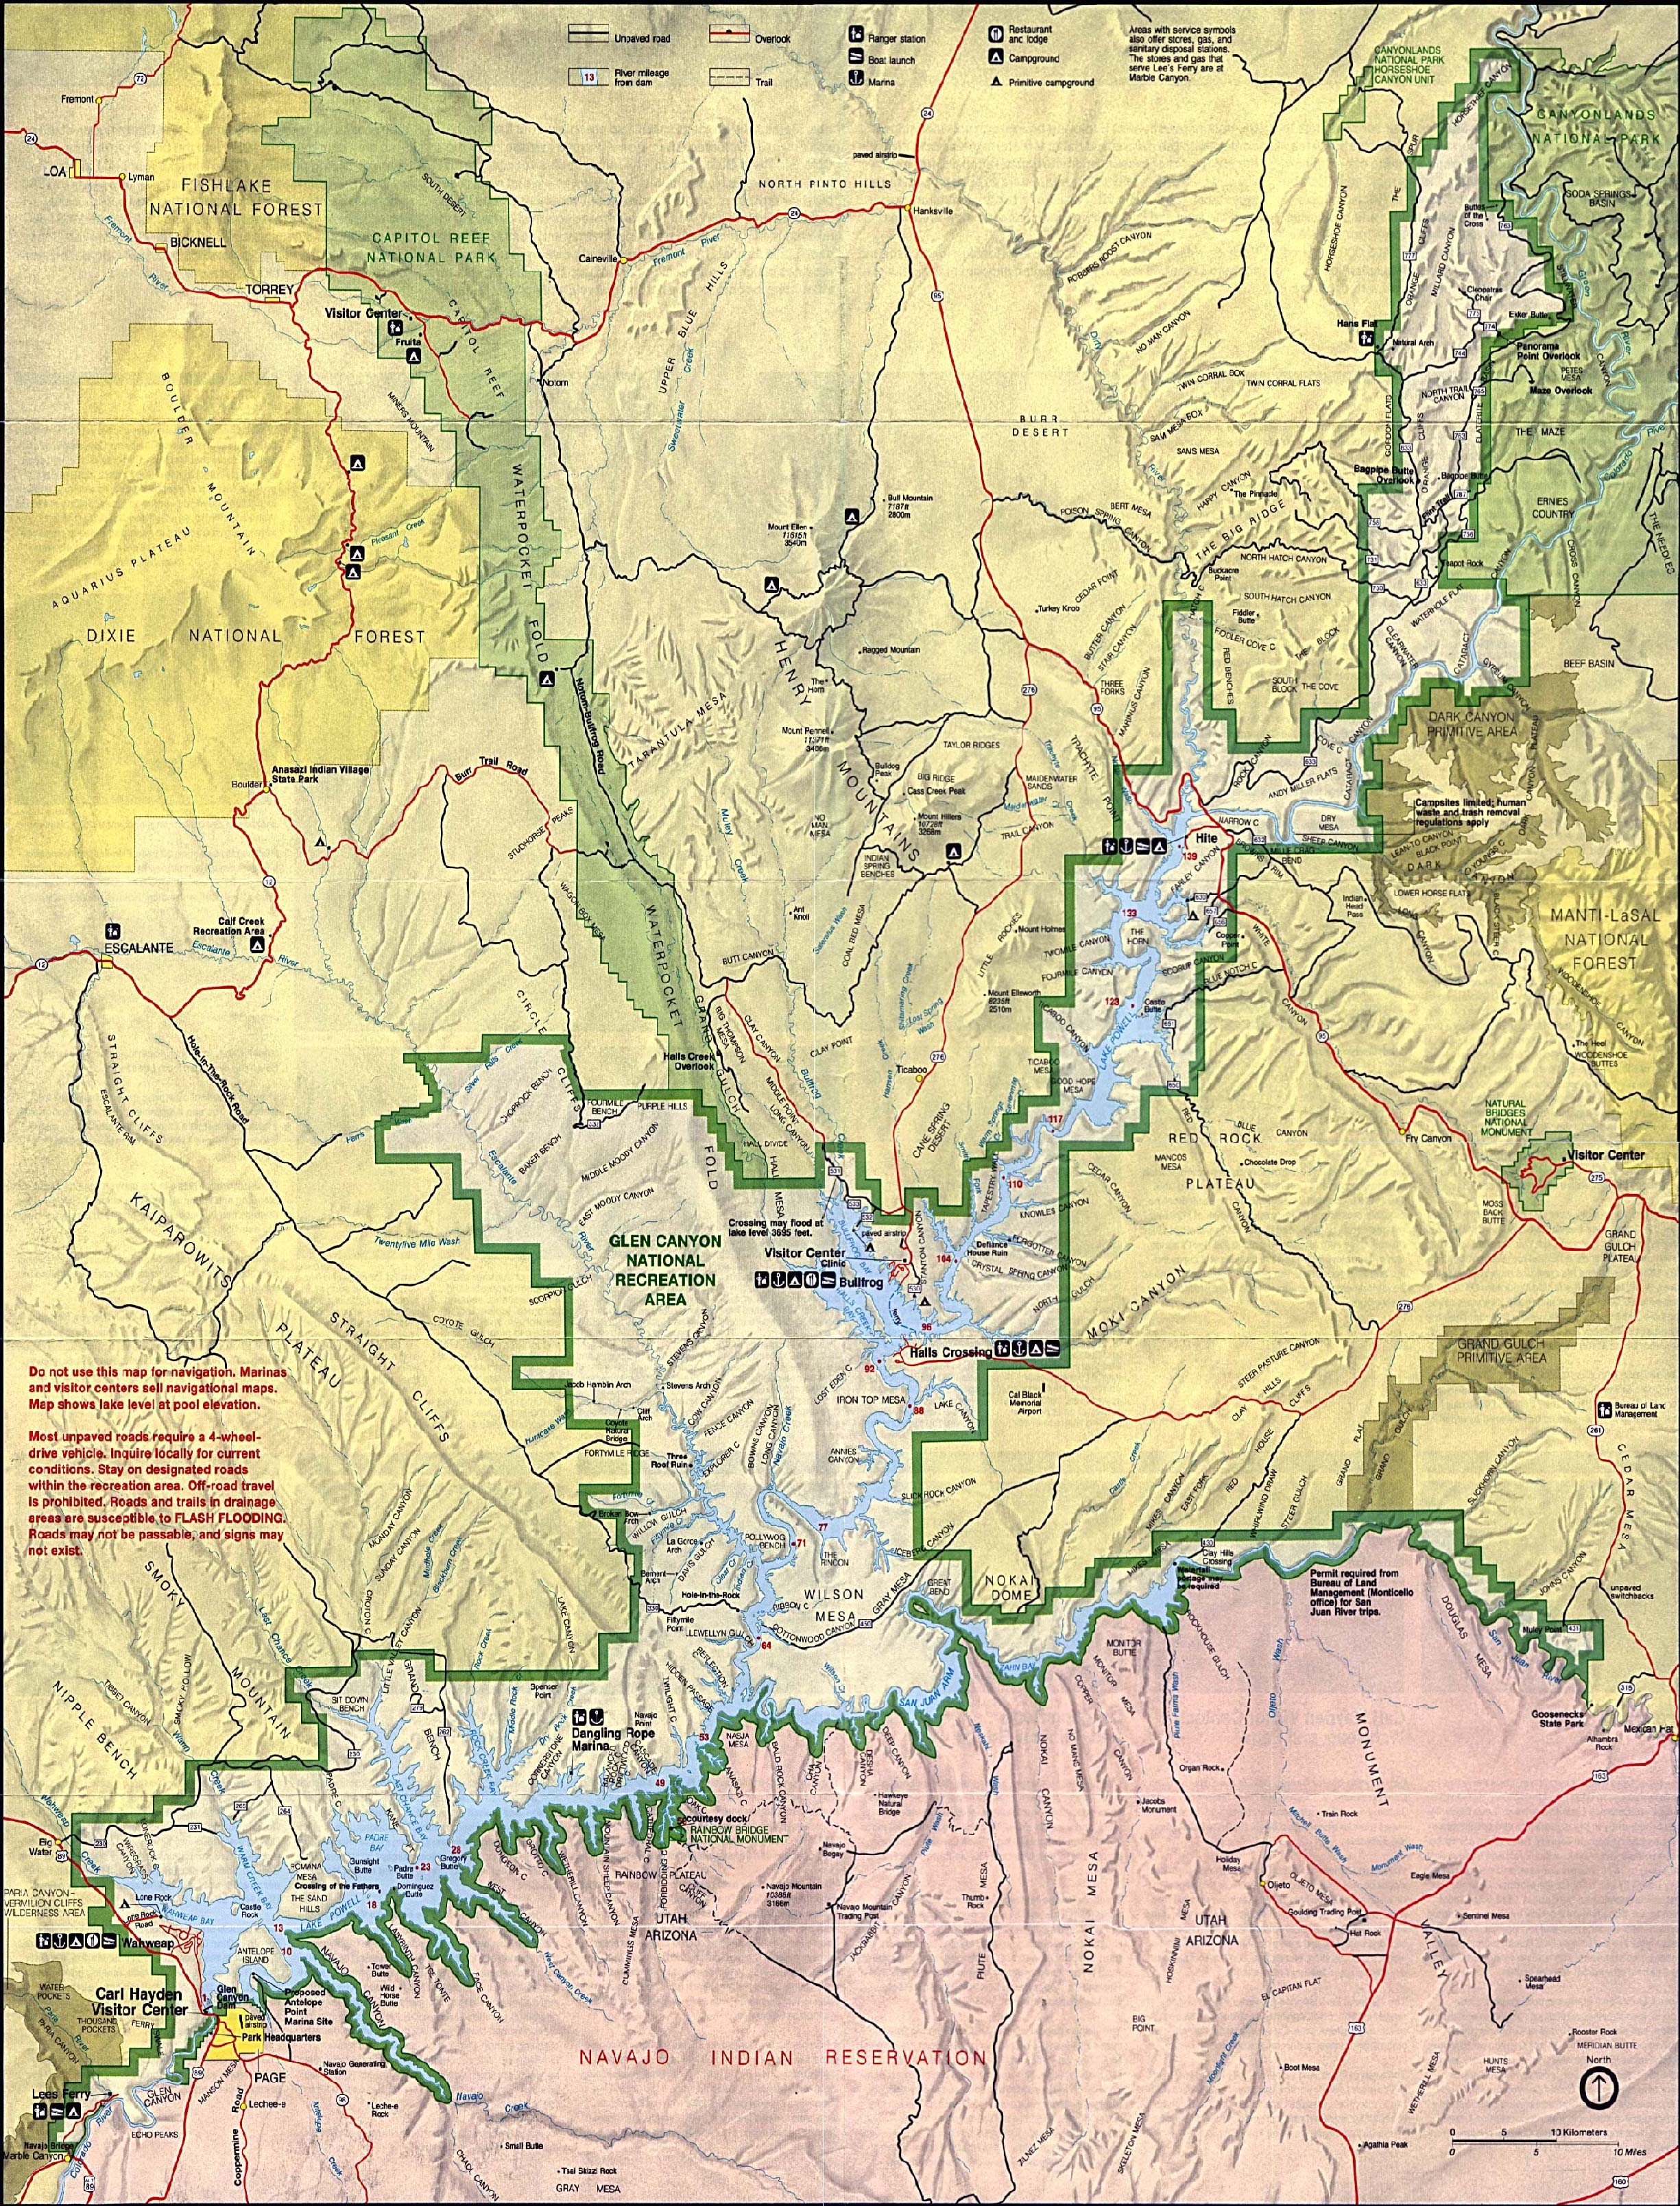 Map Of Arizona And Utah National Parks.Free Download Utah National Park Maps